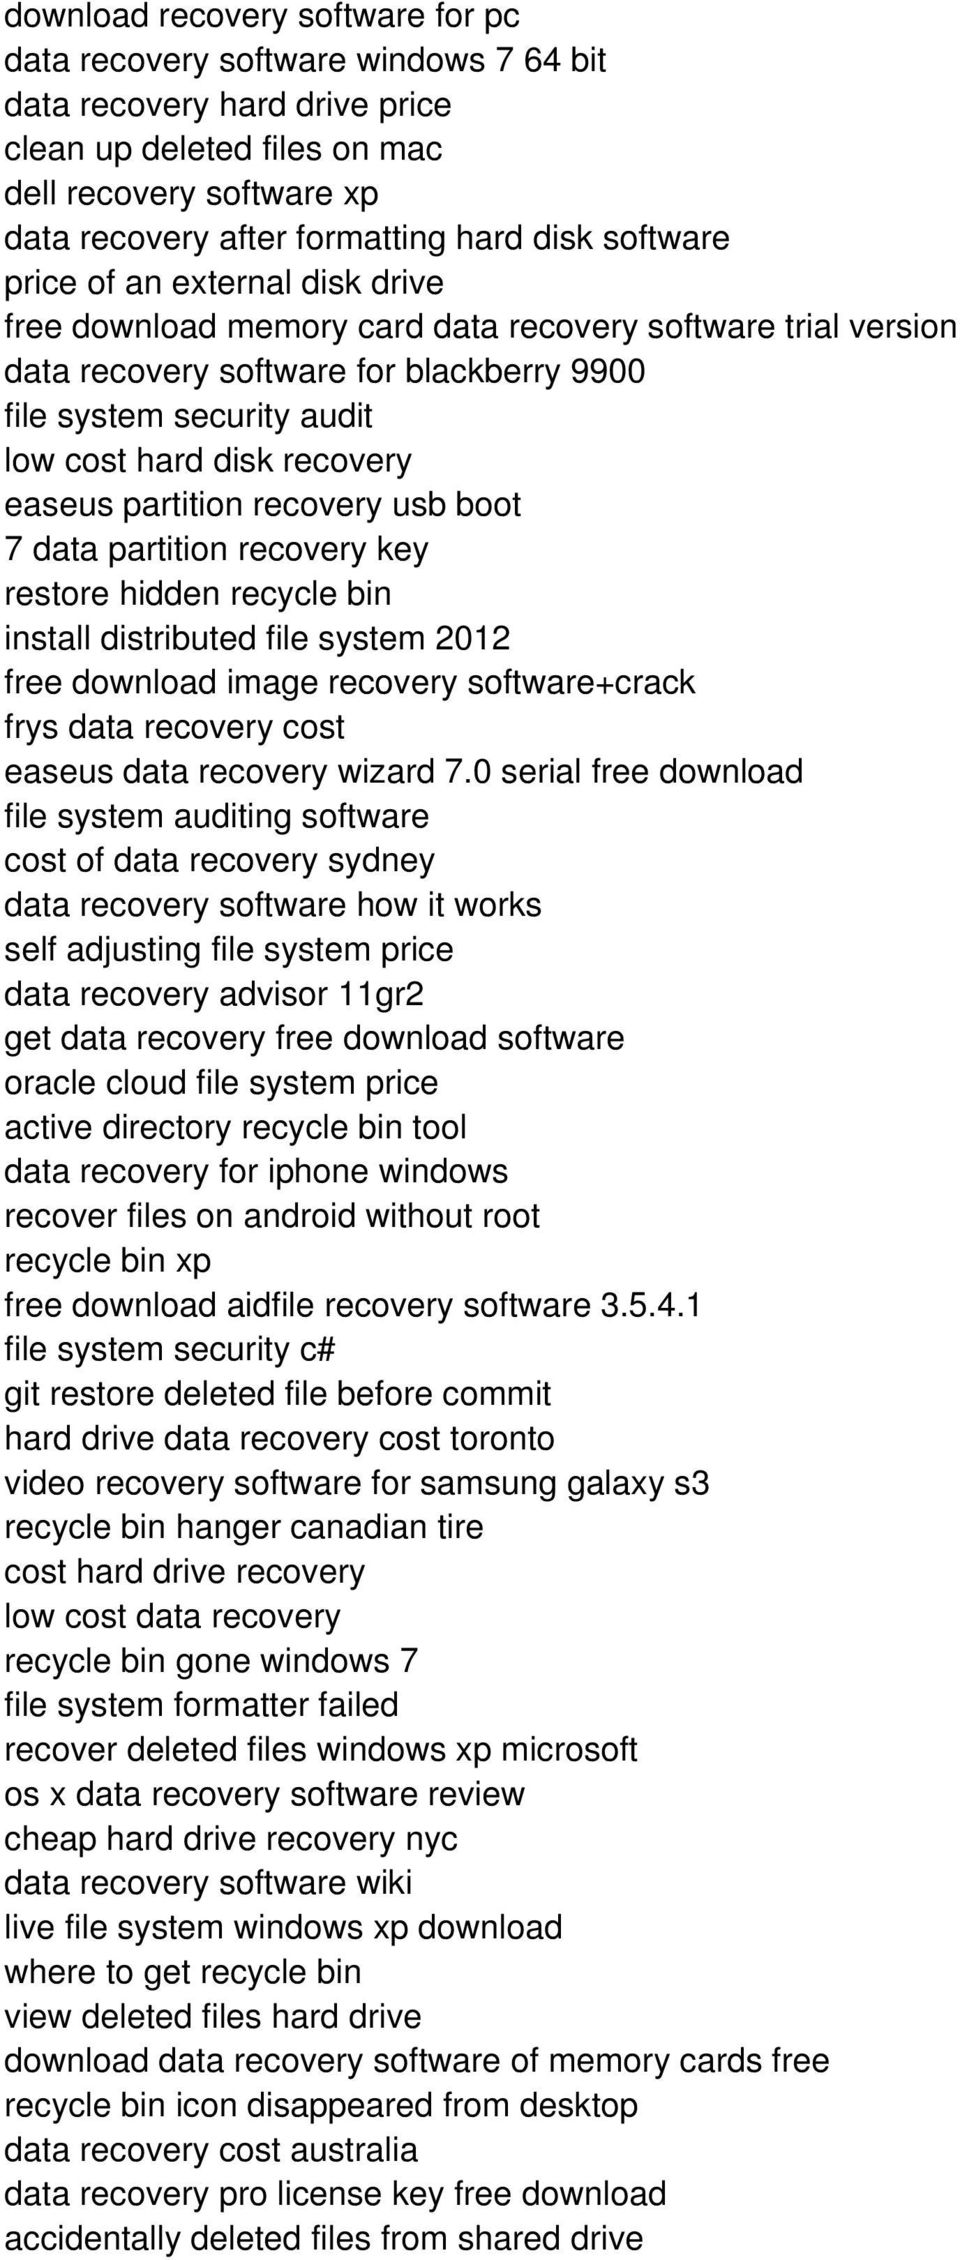 recovery easeus partition recovery usb boot 7 data partition recovery key restore hidden recycle bin install distributed file system 2012 free download image recovery software+crack frys data